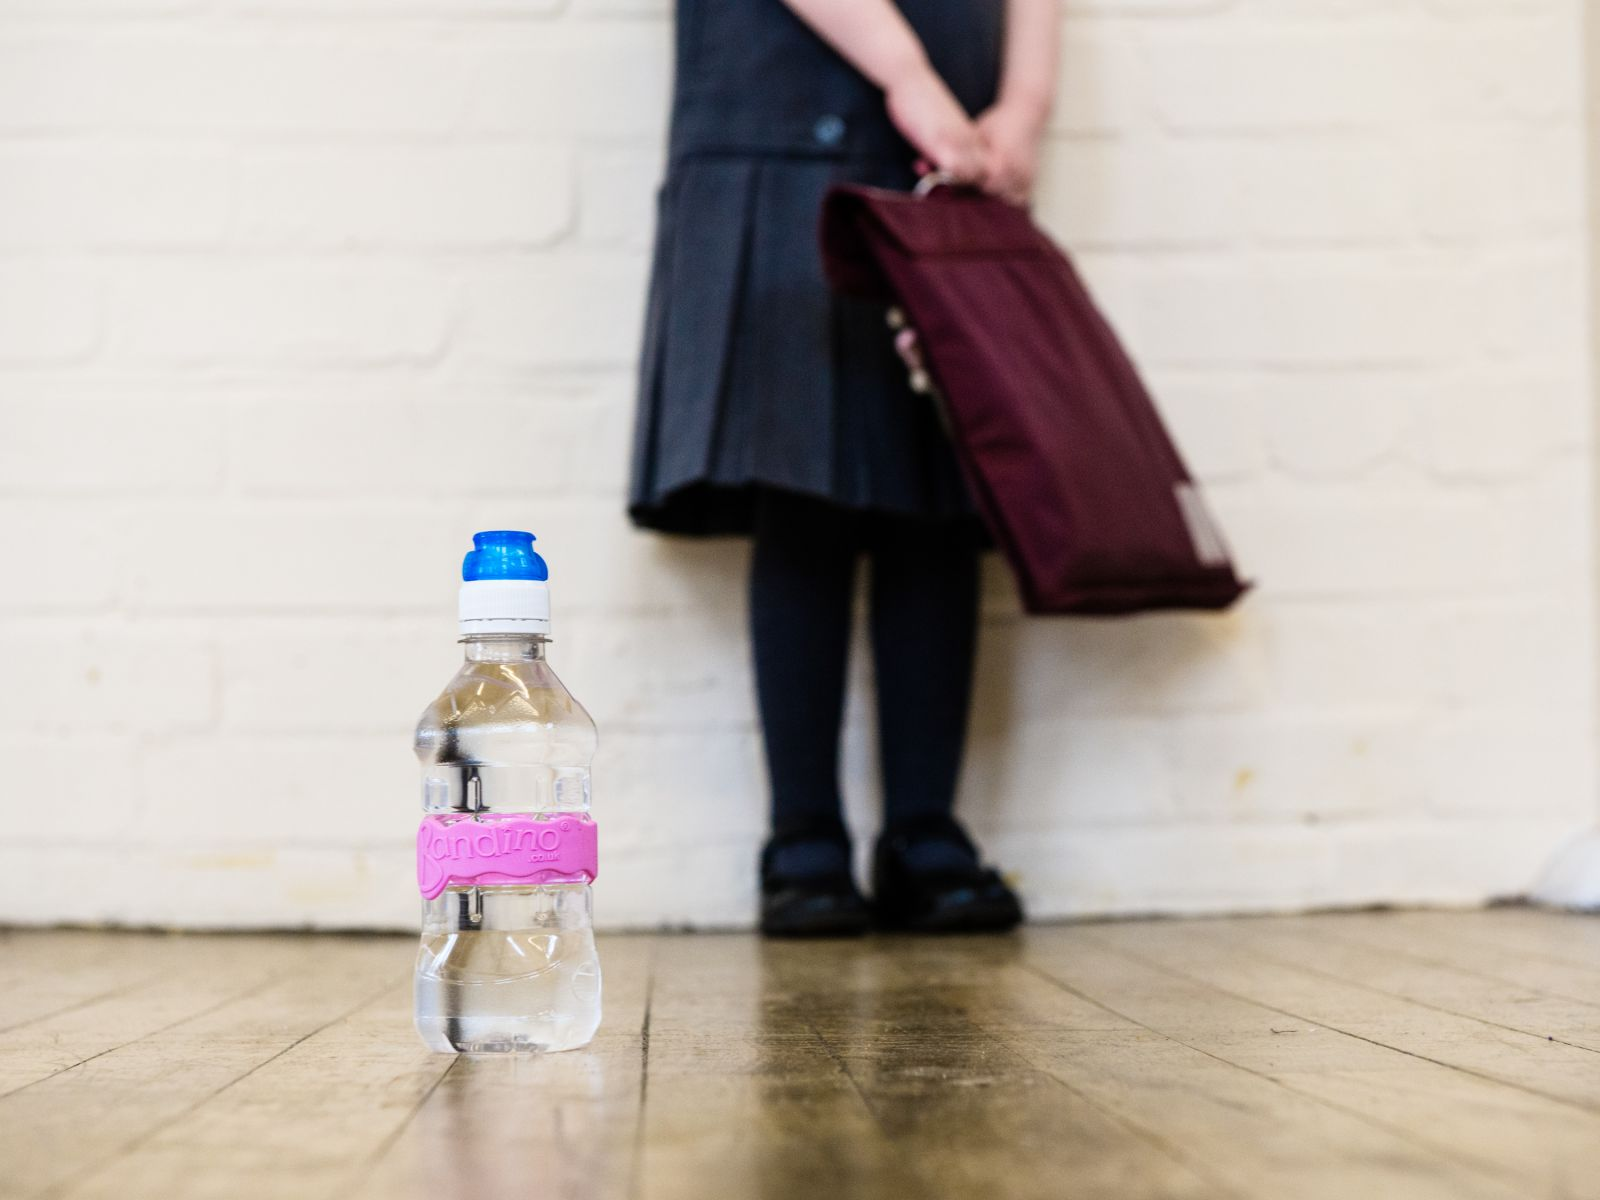 Water helps concentration at school